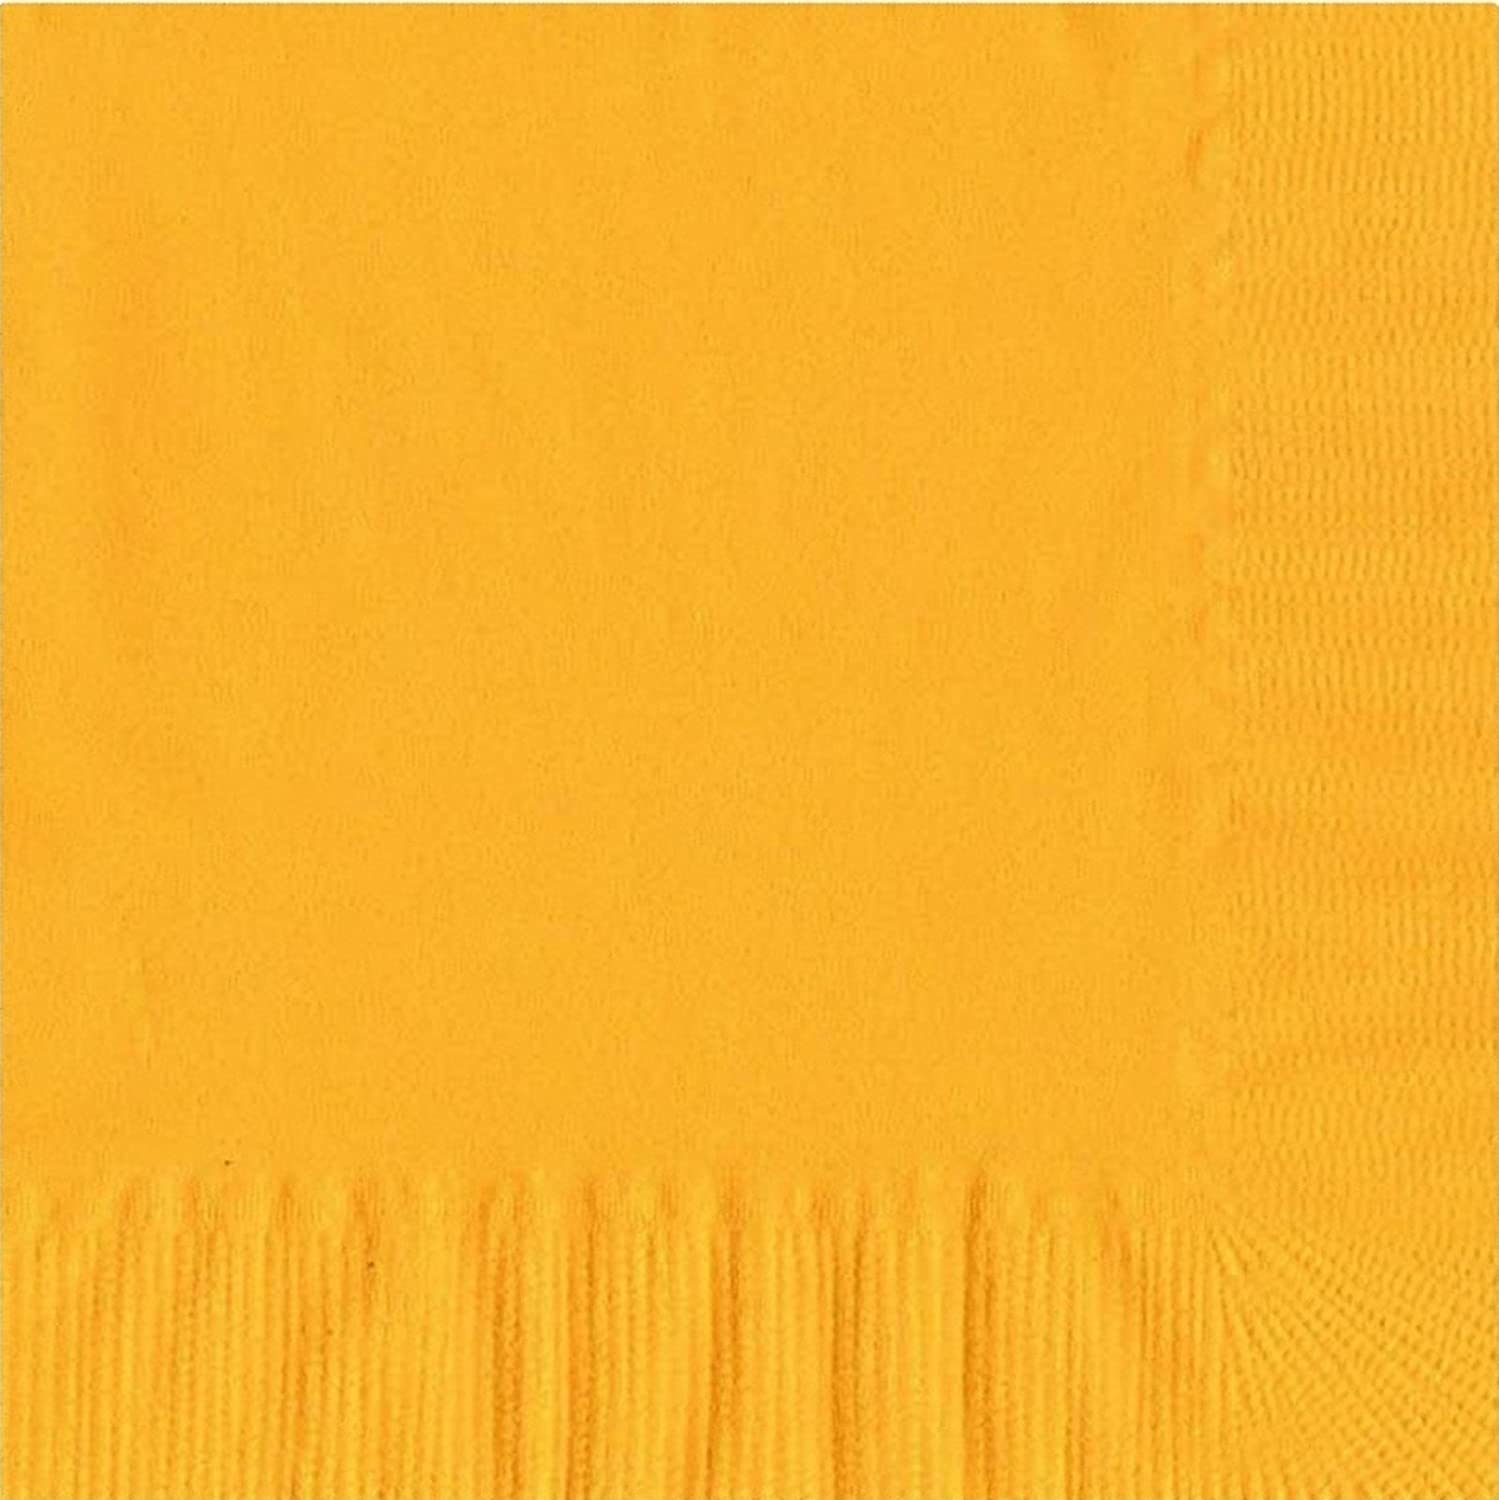 50 Plain Solid Colors Luncheon Max 53% OFF Ranking TOP4 Dinner - Napkins Ye Harvest Paper